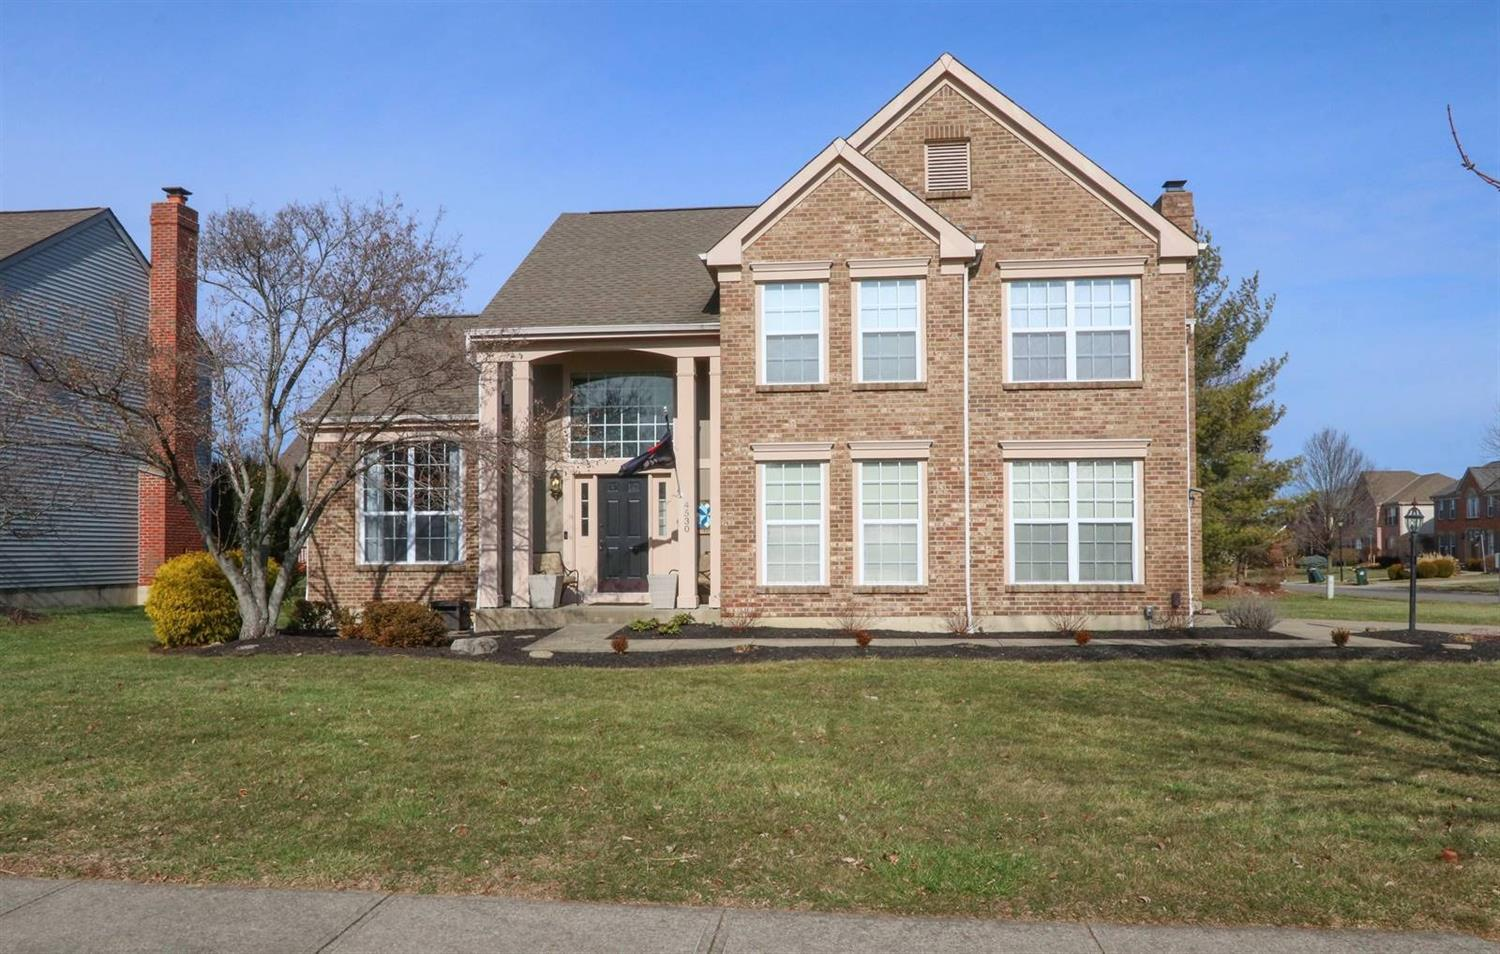 Property for sale at 4530 Placepointe Drive, Mason,  Ohio 45040